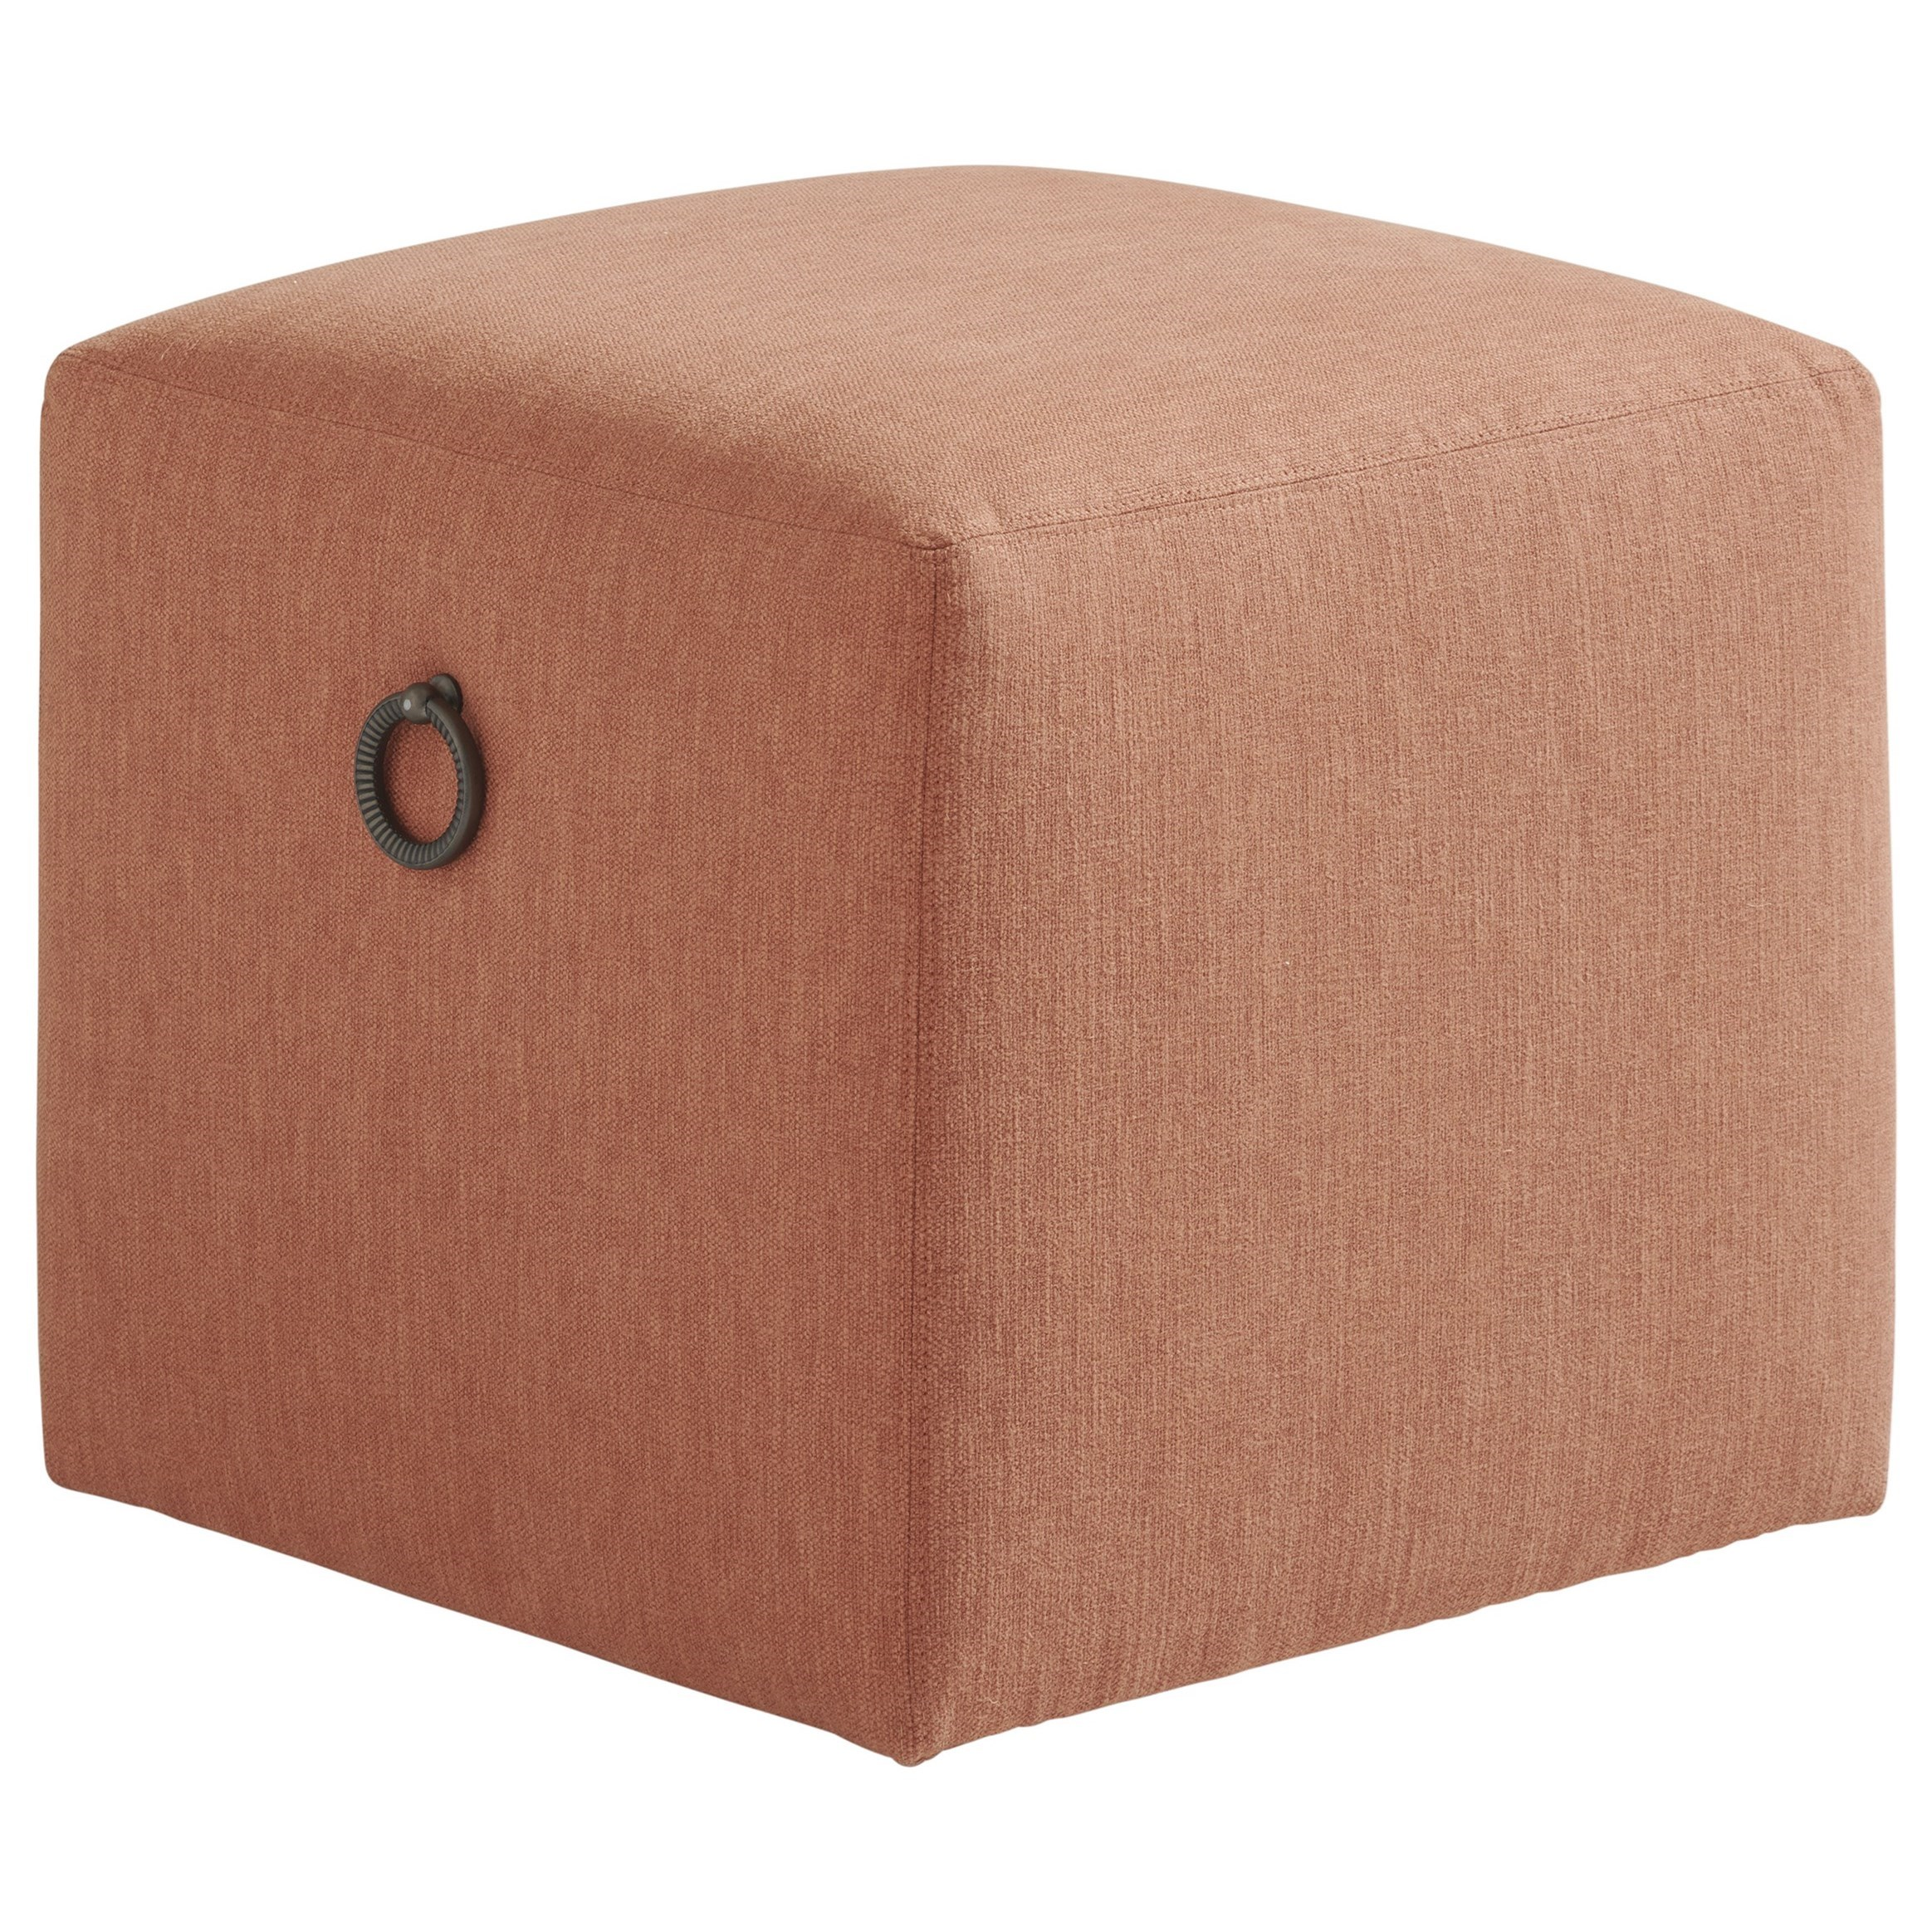 Ocean Breeze Jupiter Ottoman by Tommy Bahama Home at Baer's Furniture